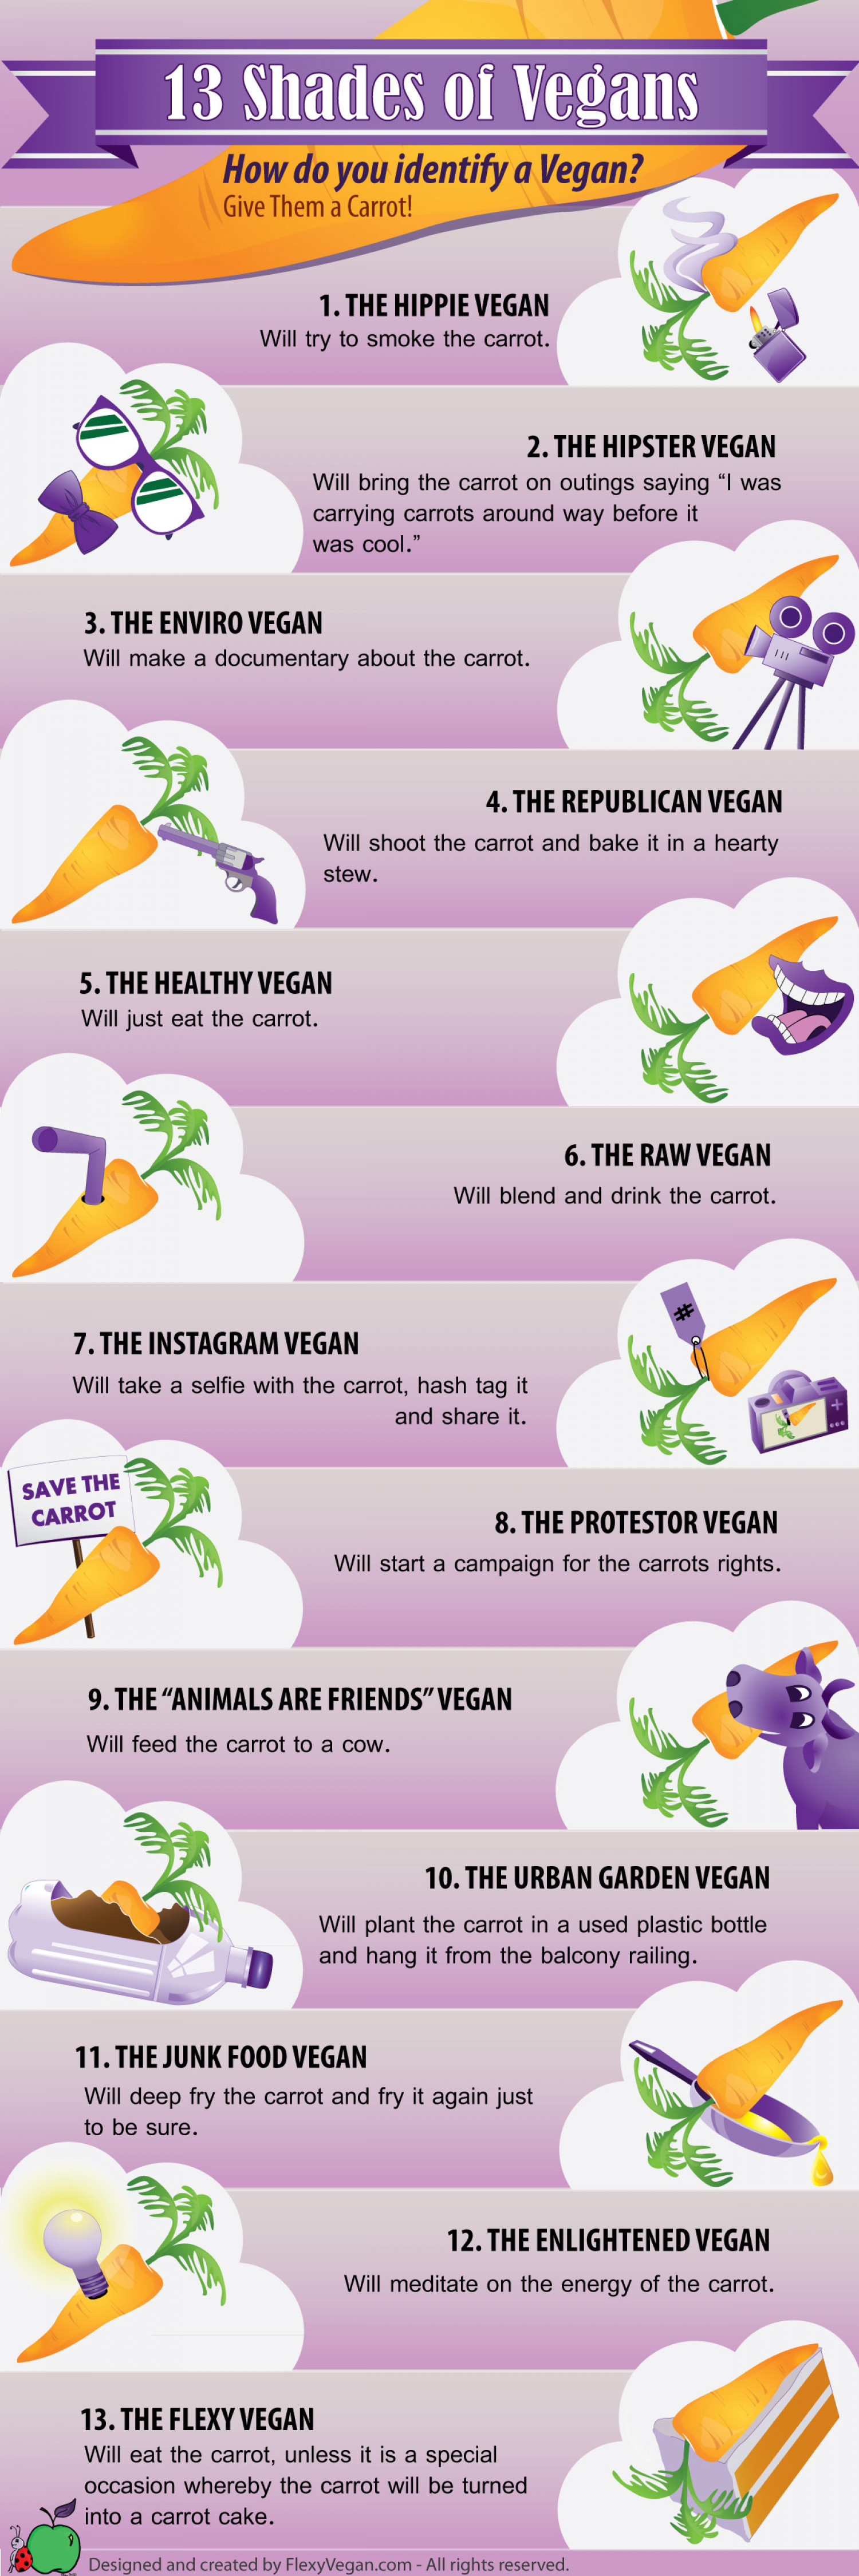 13 shades of Vegans Infographic